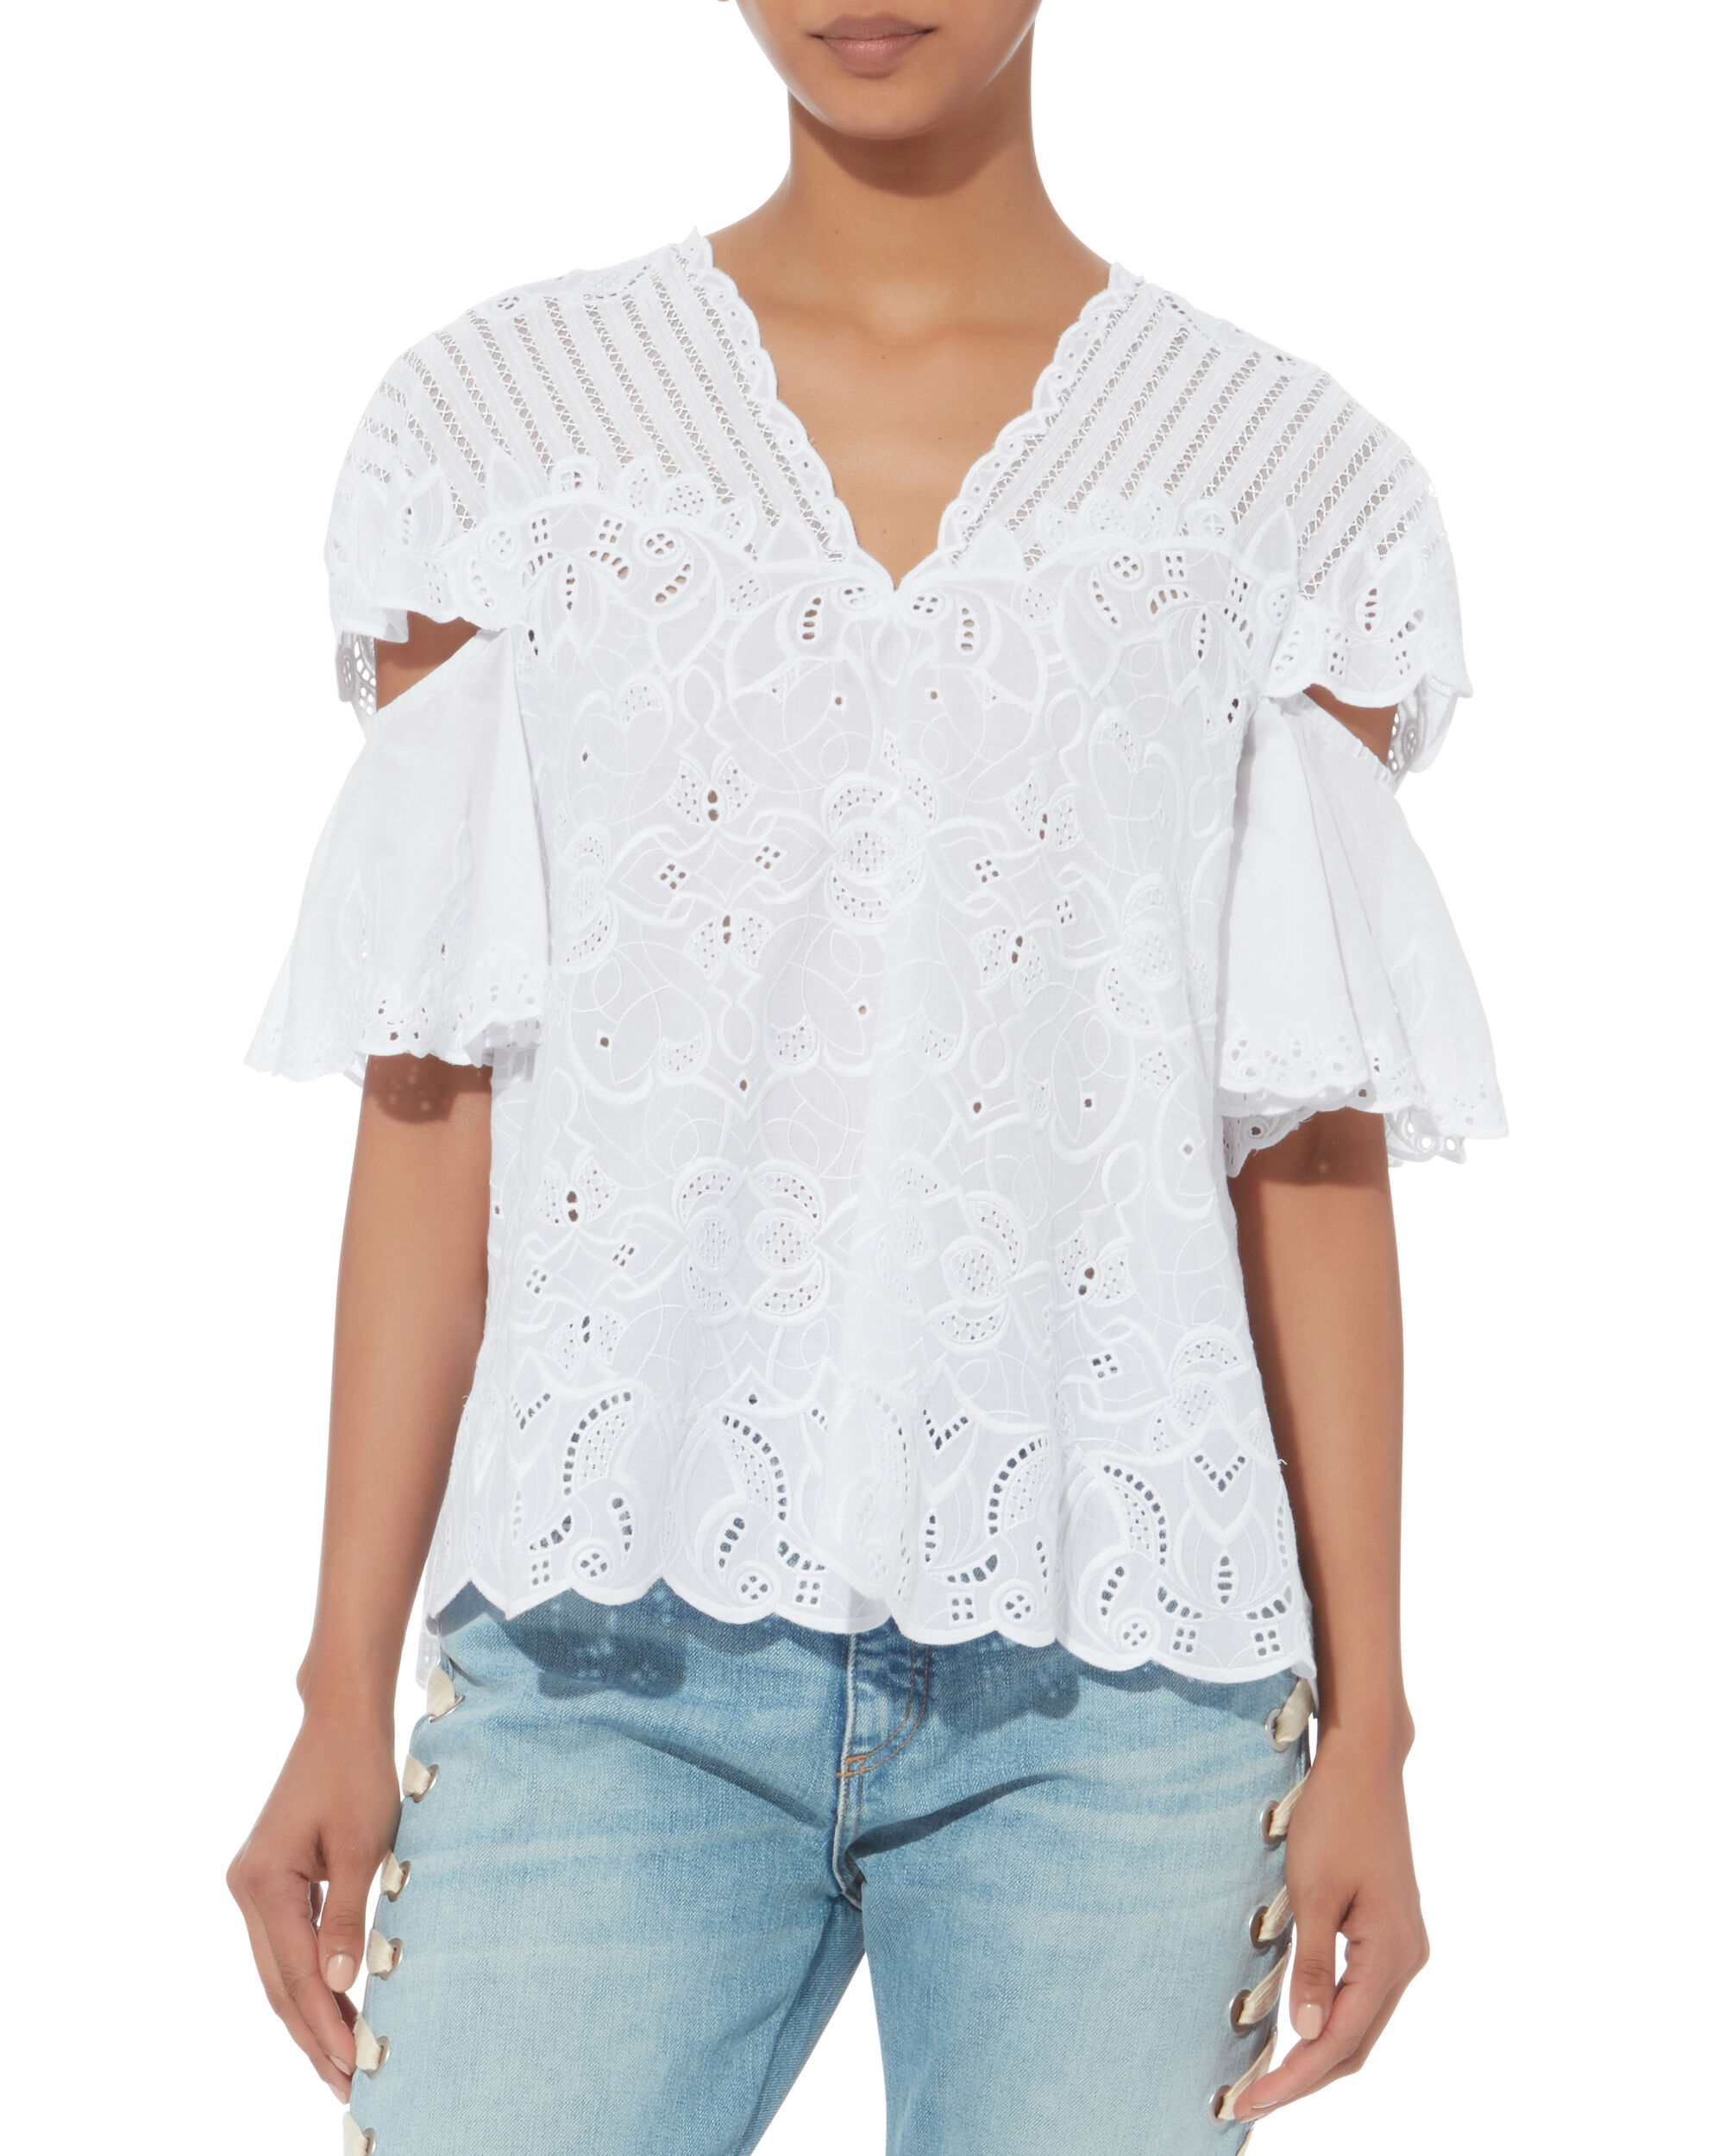 Cutout Embroidery Top, WHITE, hi-res